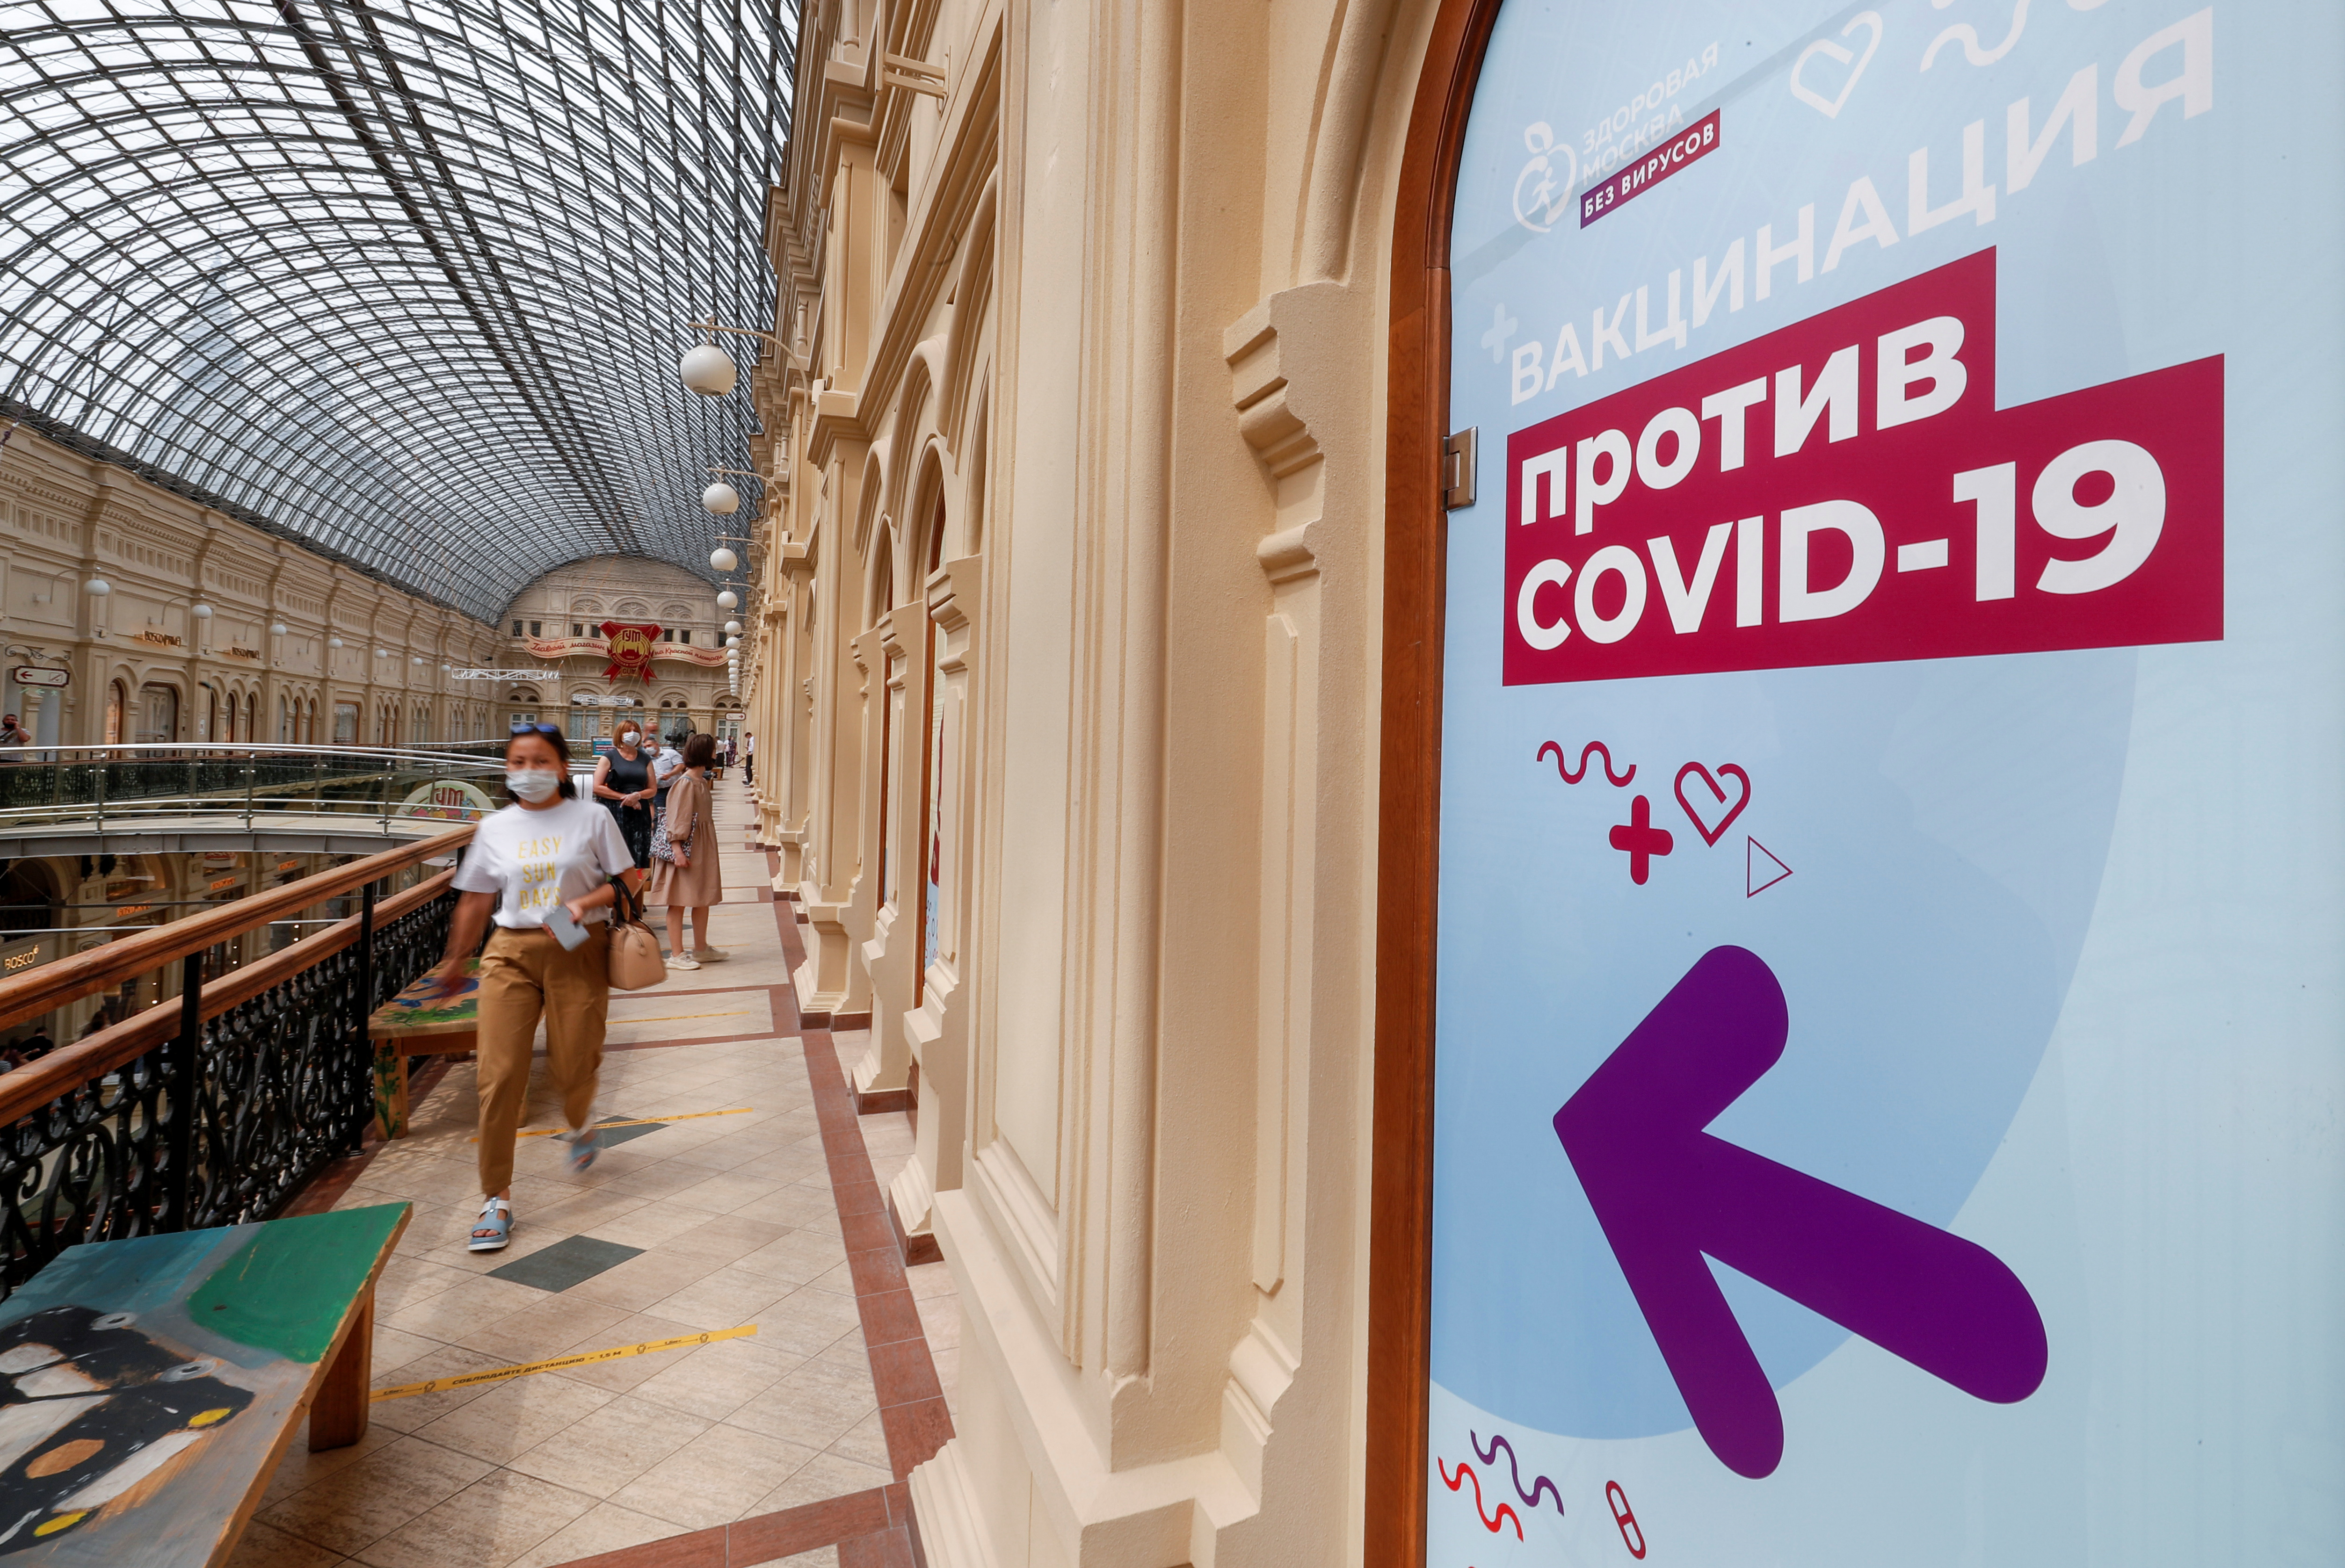 A sign is on display outside a vaccination centre in the State Department Store, GUM, amid the outbreak of the coronavirus disease (COVID-19), in central Moscow, Russia June 25, 2021. A sign reads: